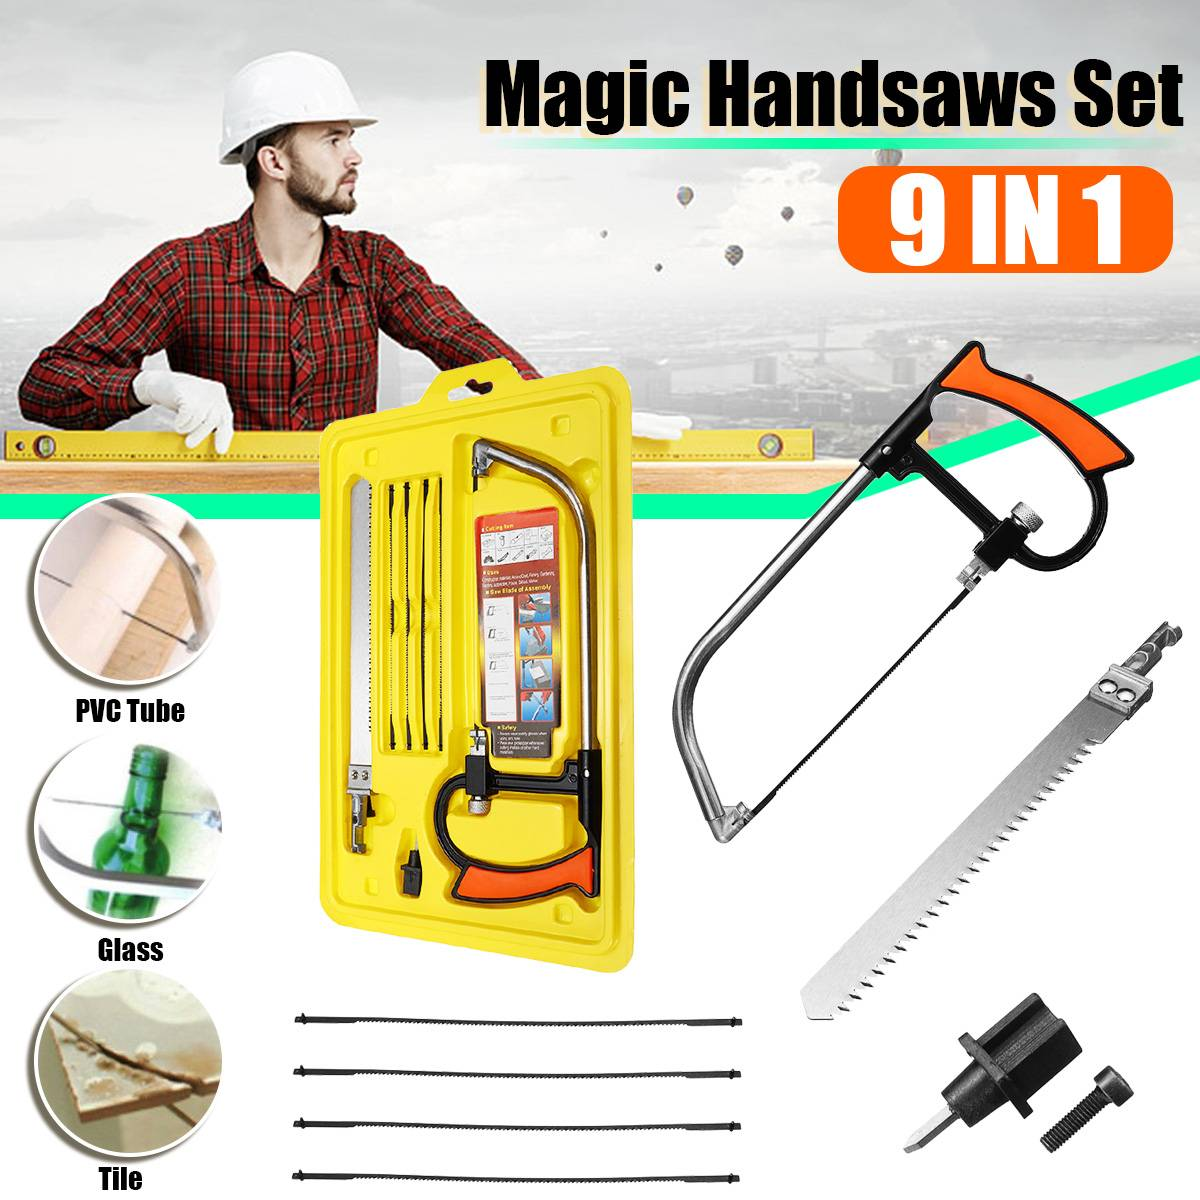 9 In 1 Abrasive Disc Handsaw Set DIY Hand Bow Saw Wooden Working Kitchen For Wood Cutting For Saw Blade Sharpening Tool Set